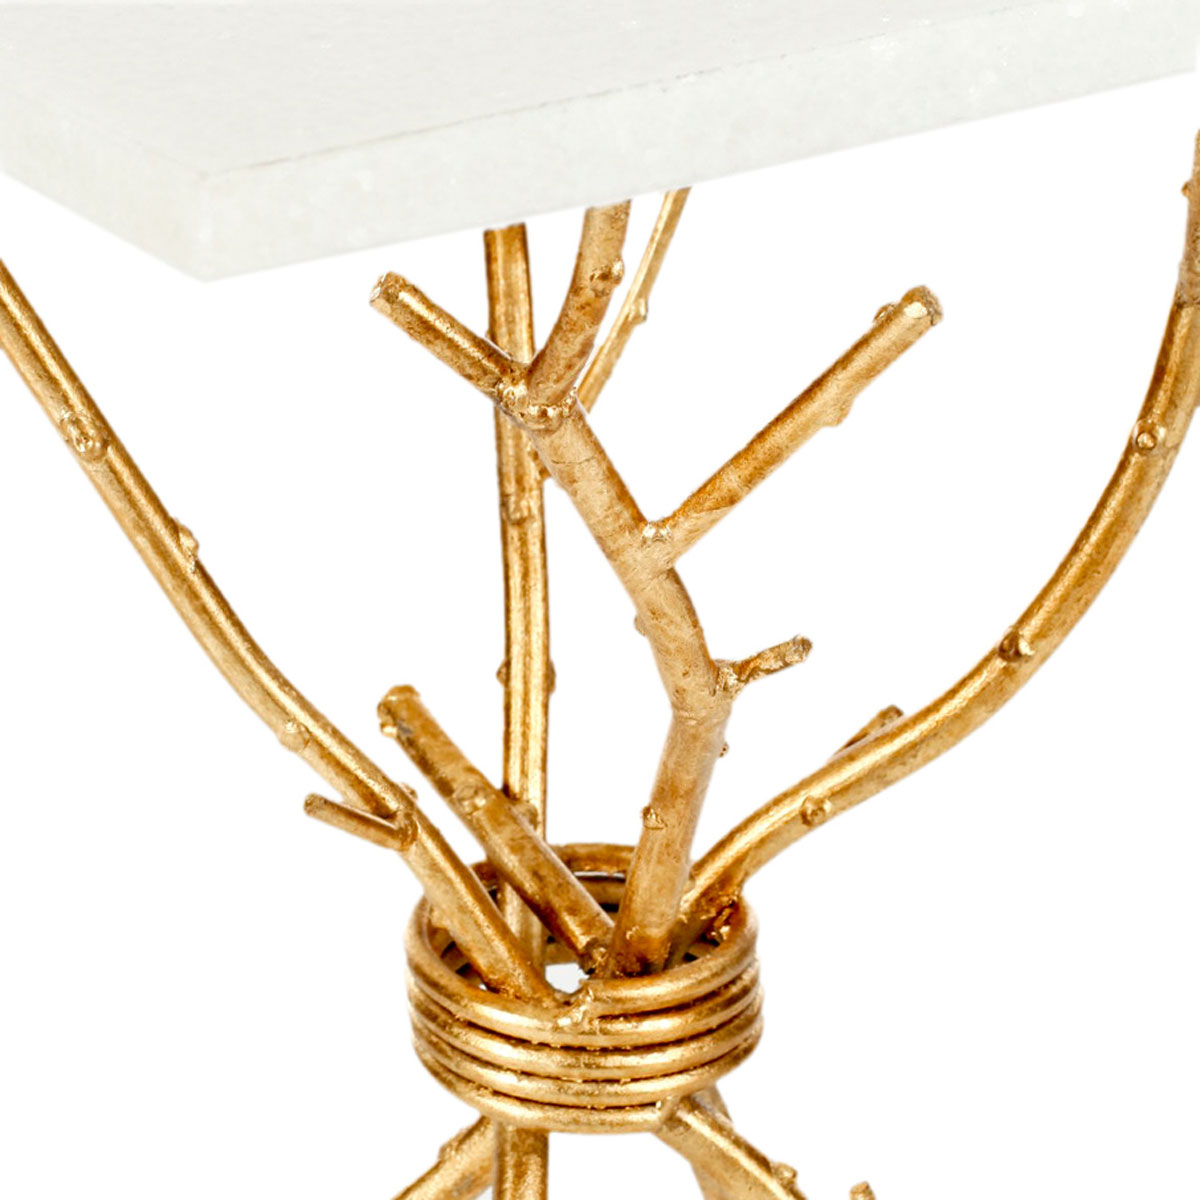 accent tables furniture safavieh detail gold table alexa mabrle top design nightstand target harrietta piece set tin side small antique drop leaf home decorators catalog holland